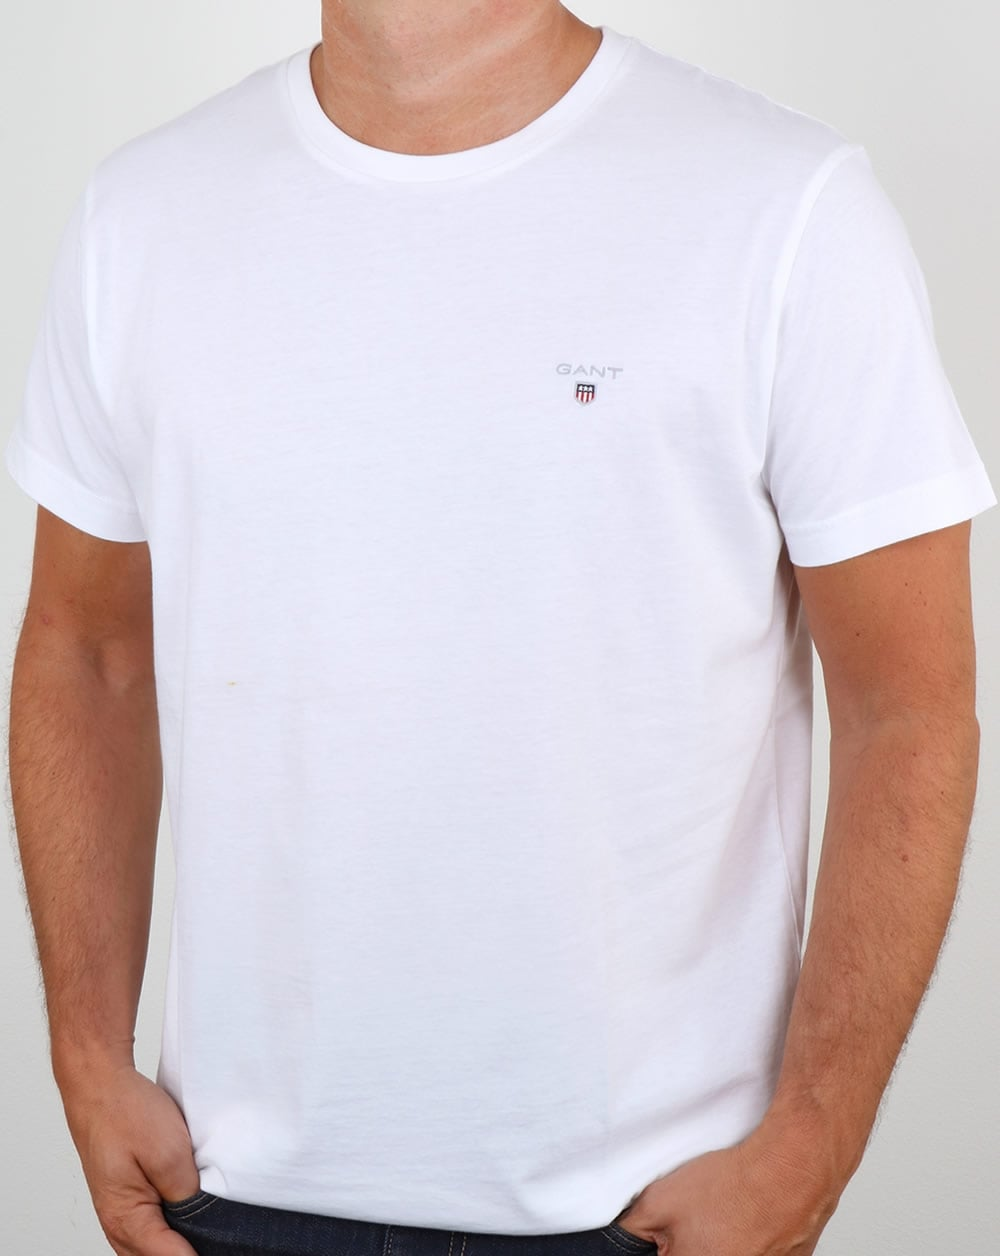 Gant solid crew neck t shirt white tee round cotton mens for Crew neck white t shirt